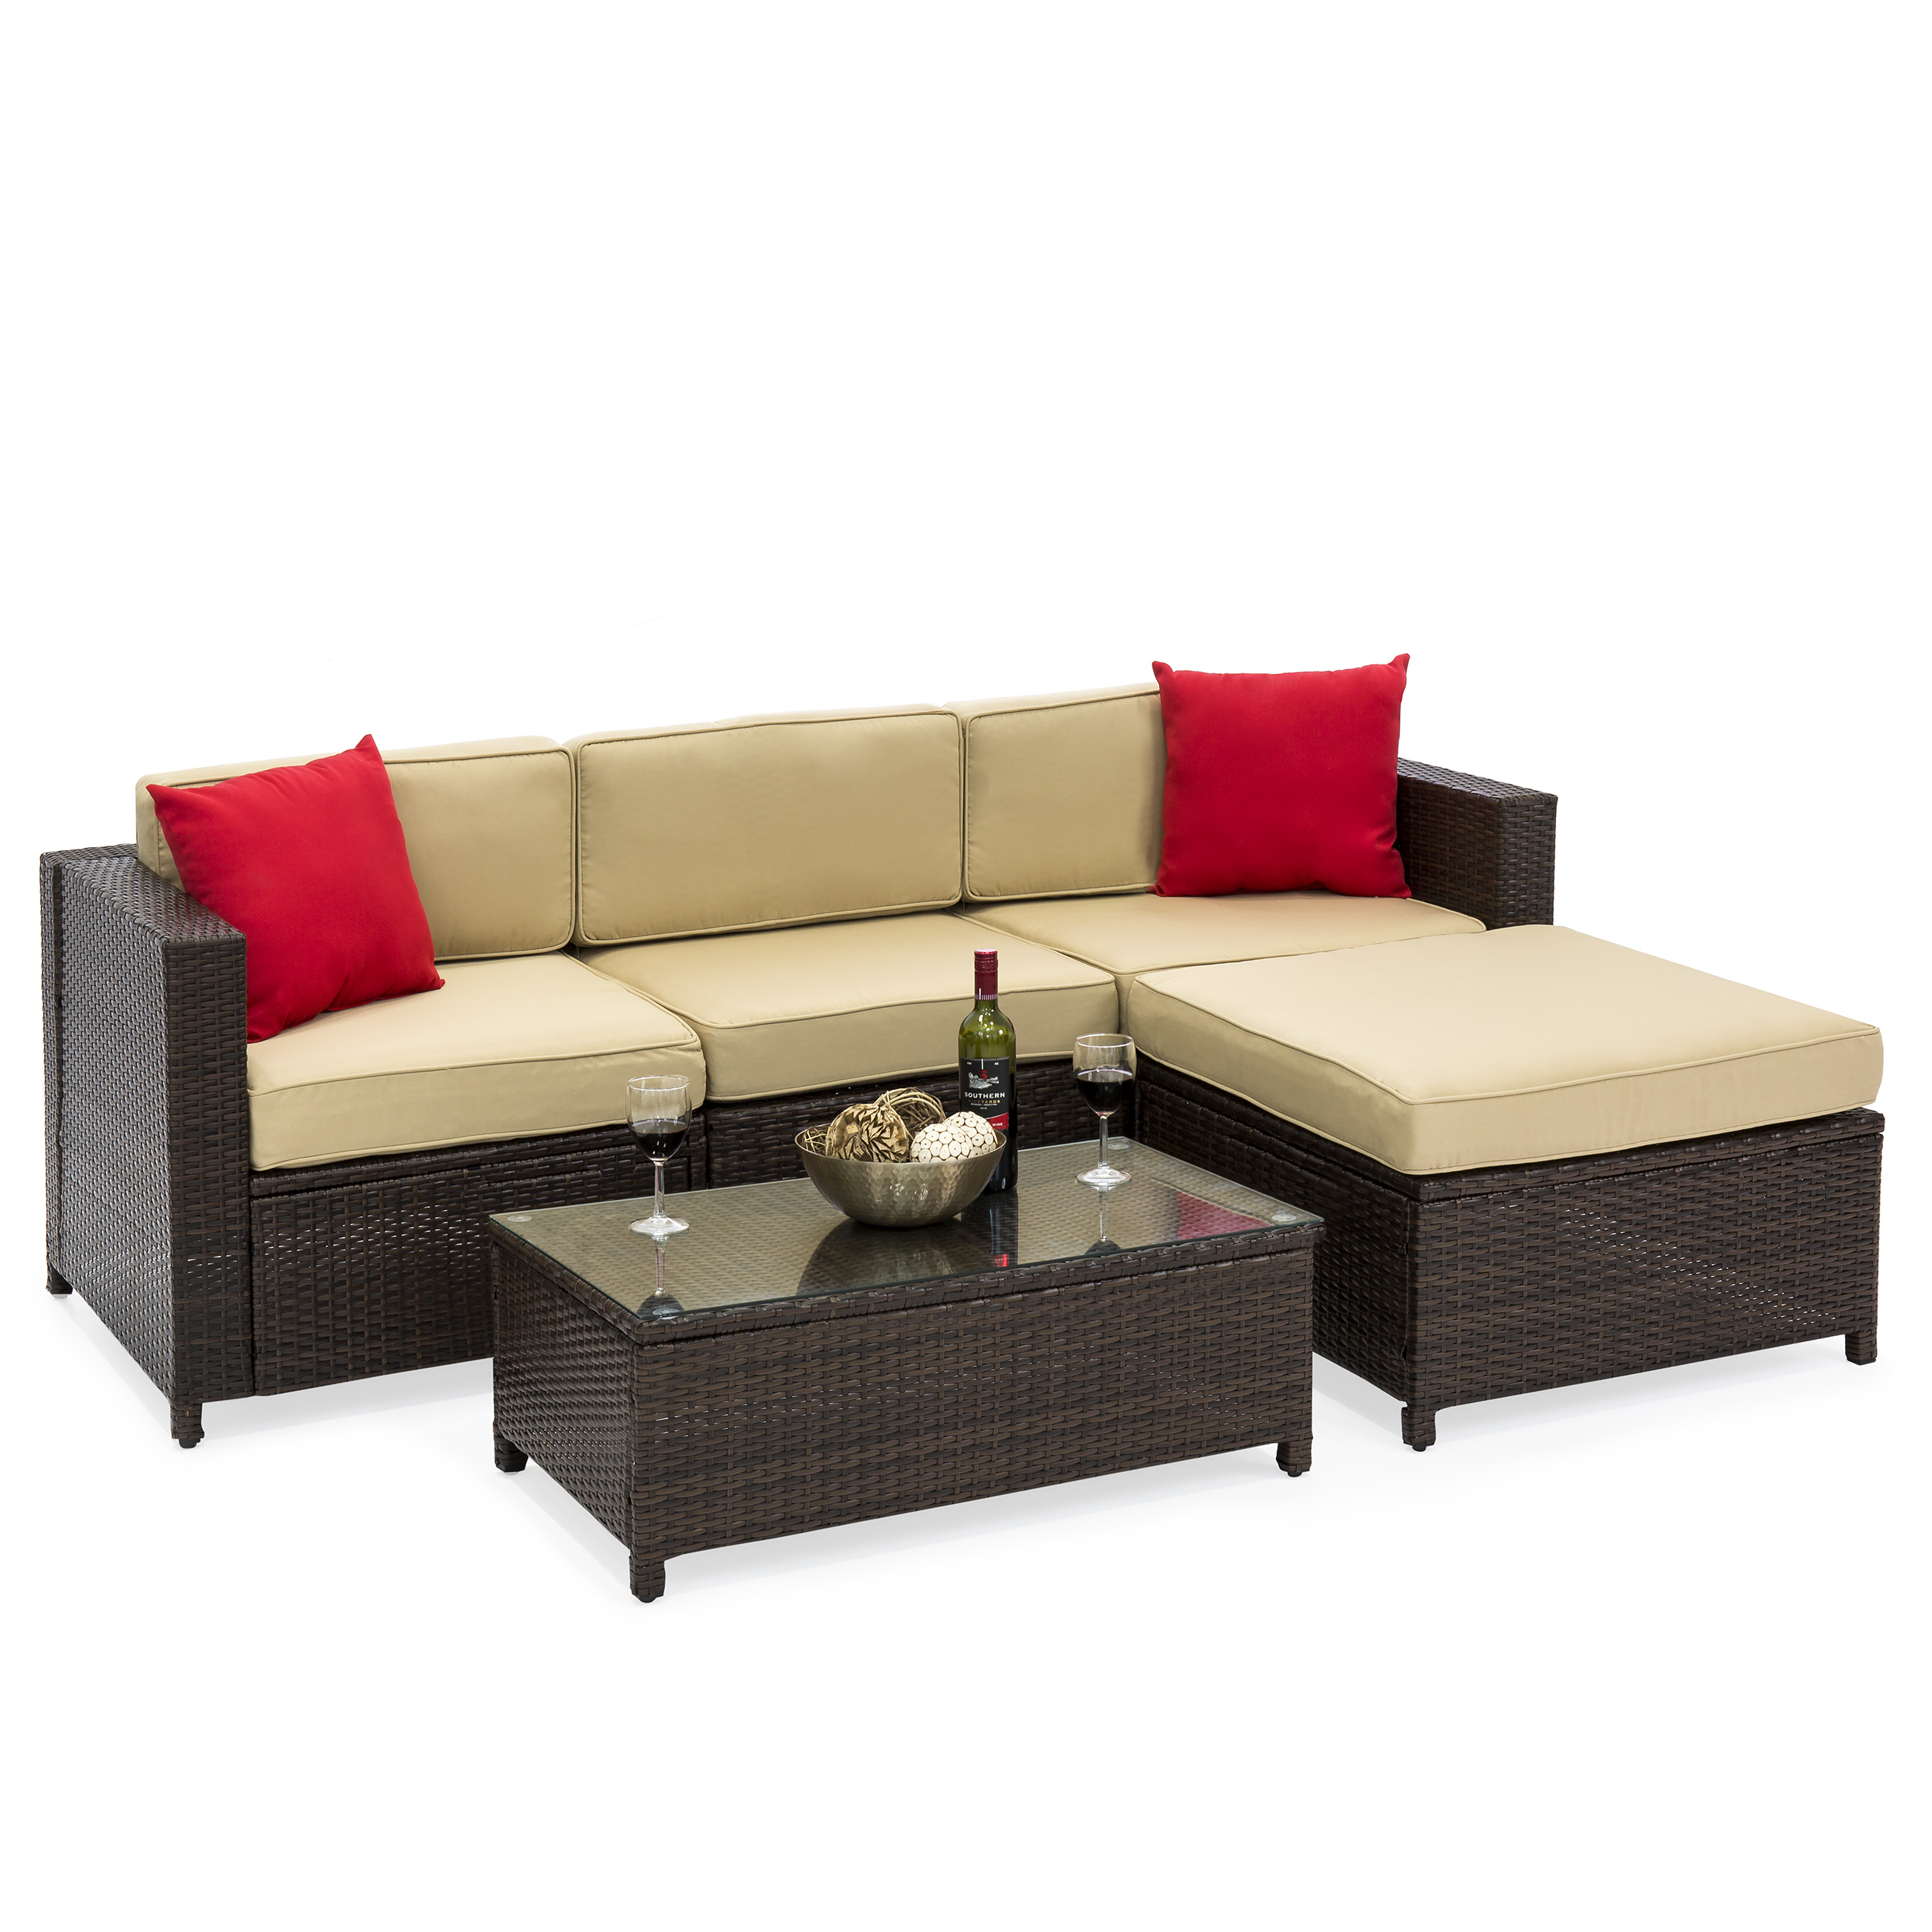 Best Choice Products 5-Piece Wicker Patio Sectional Set w  Beige Cushions and Red Accent... by